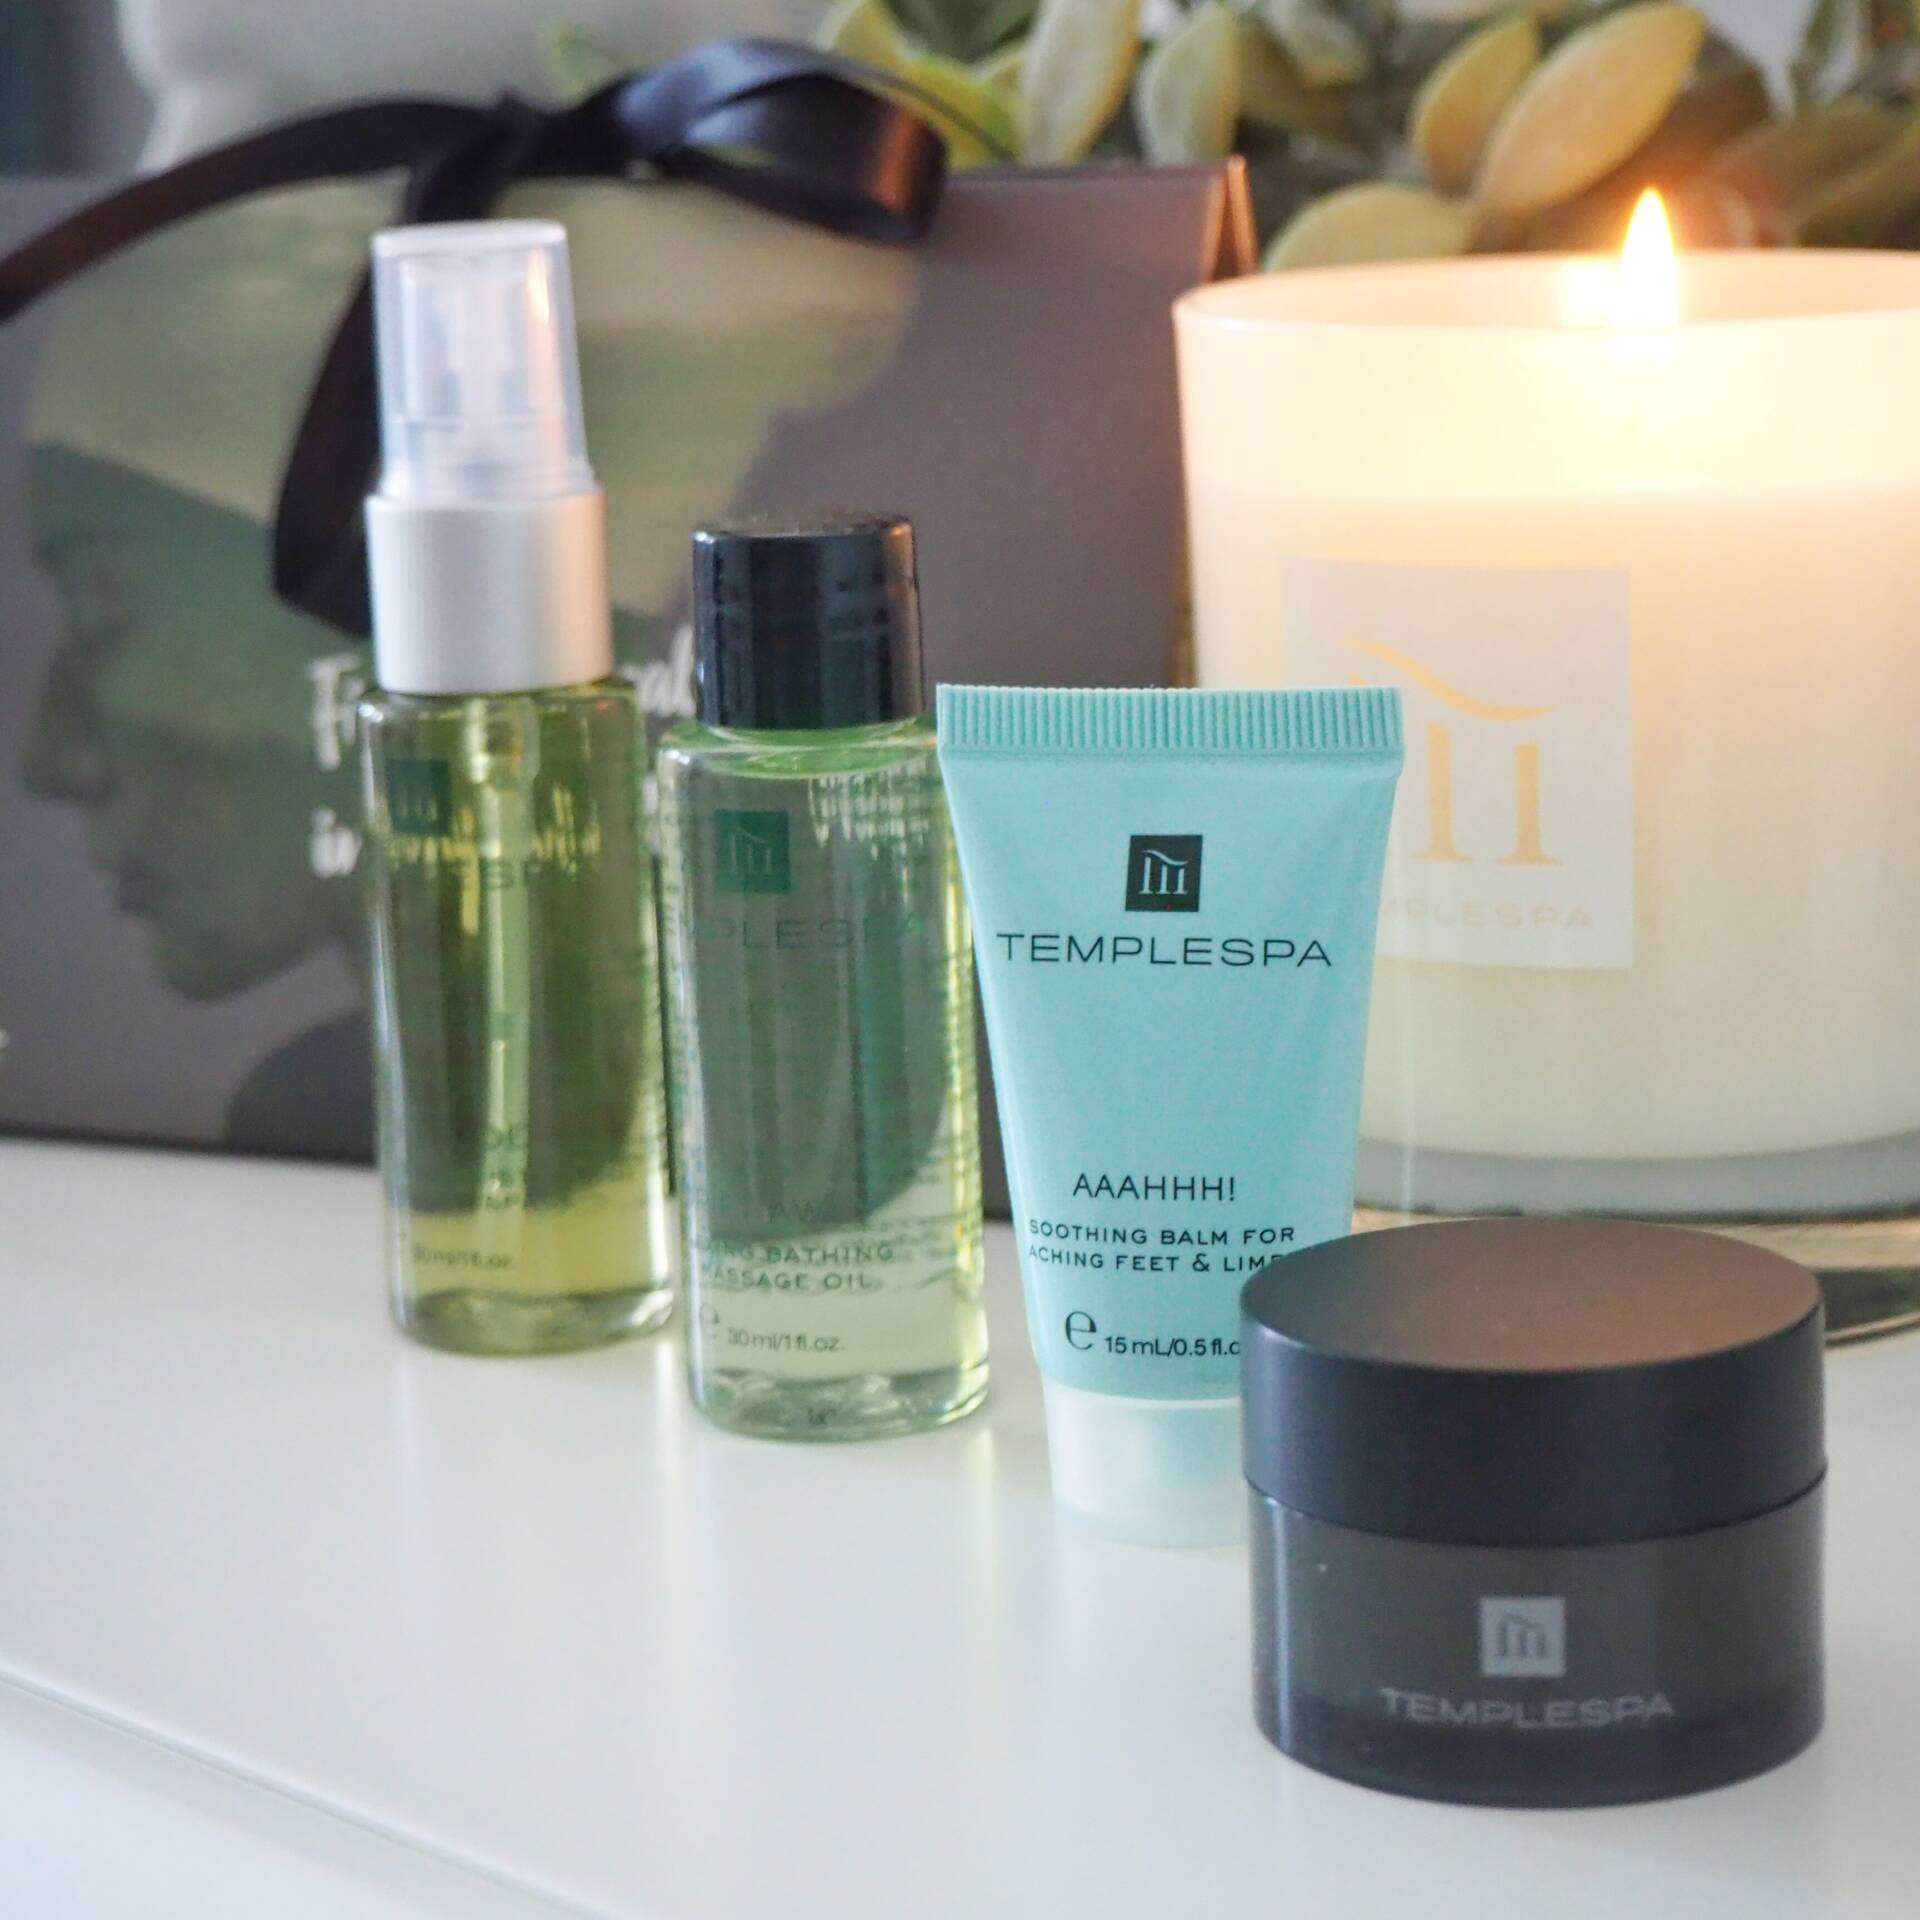 temple-spa-gift-set